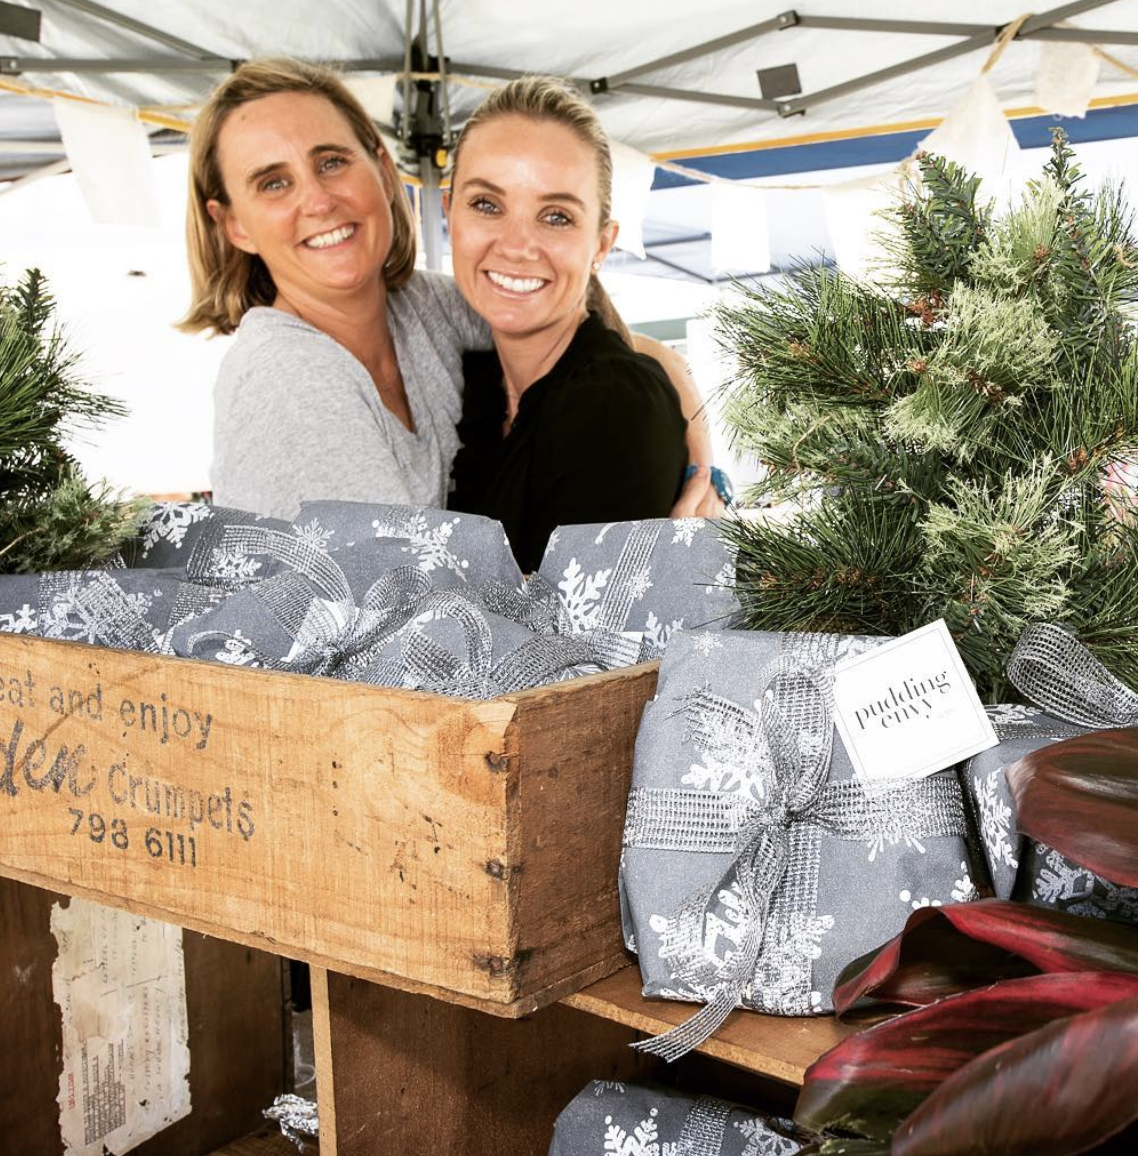 Mel Clark (right) at her sell out Food Envy Christmas Pudding stall in Mosman.